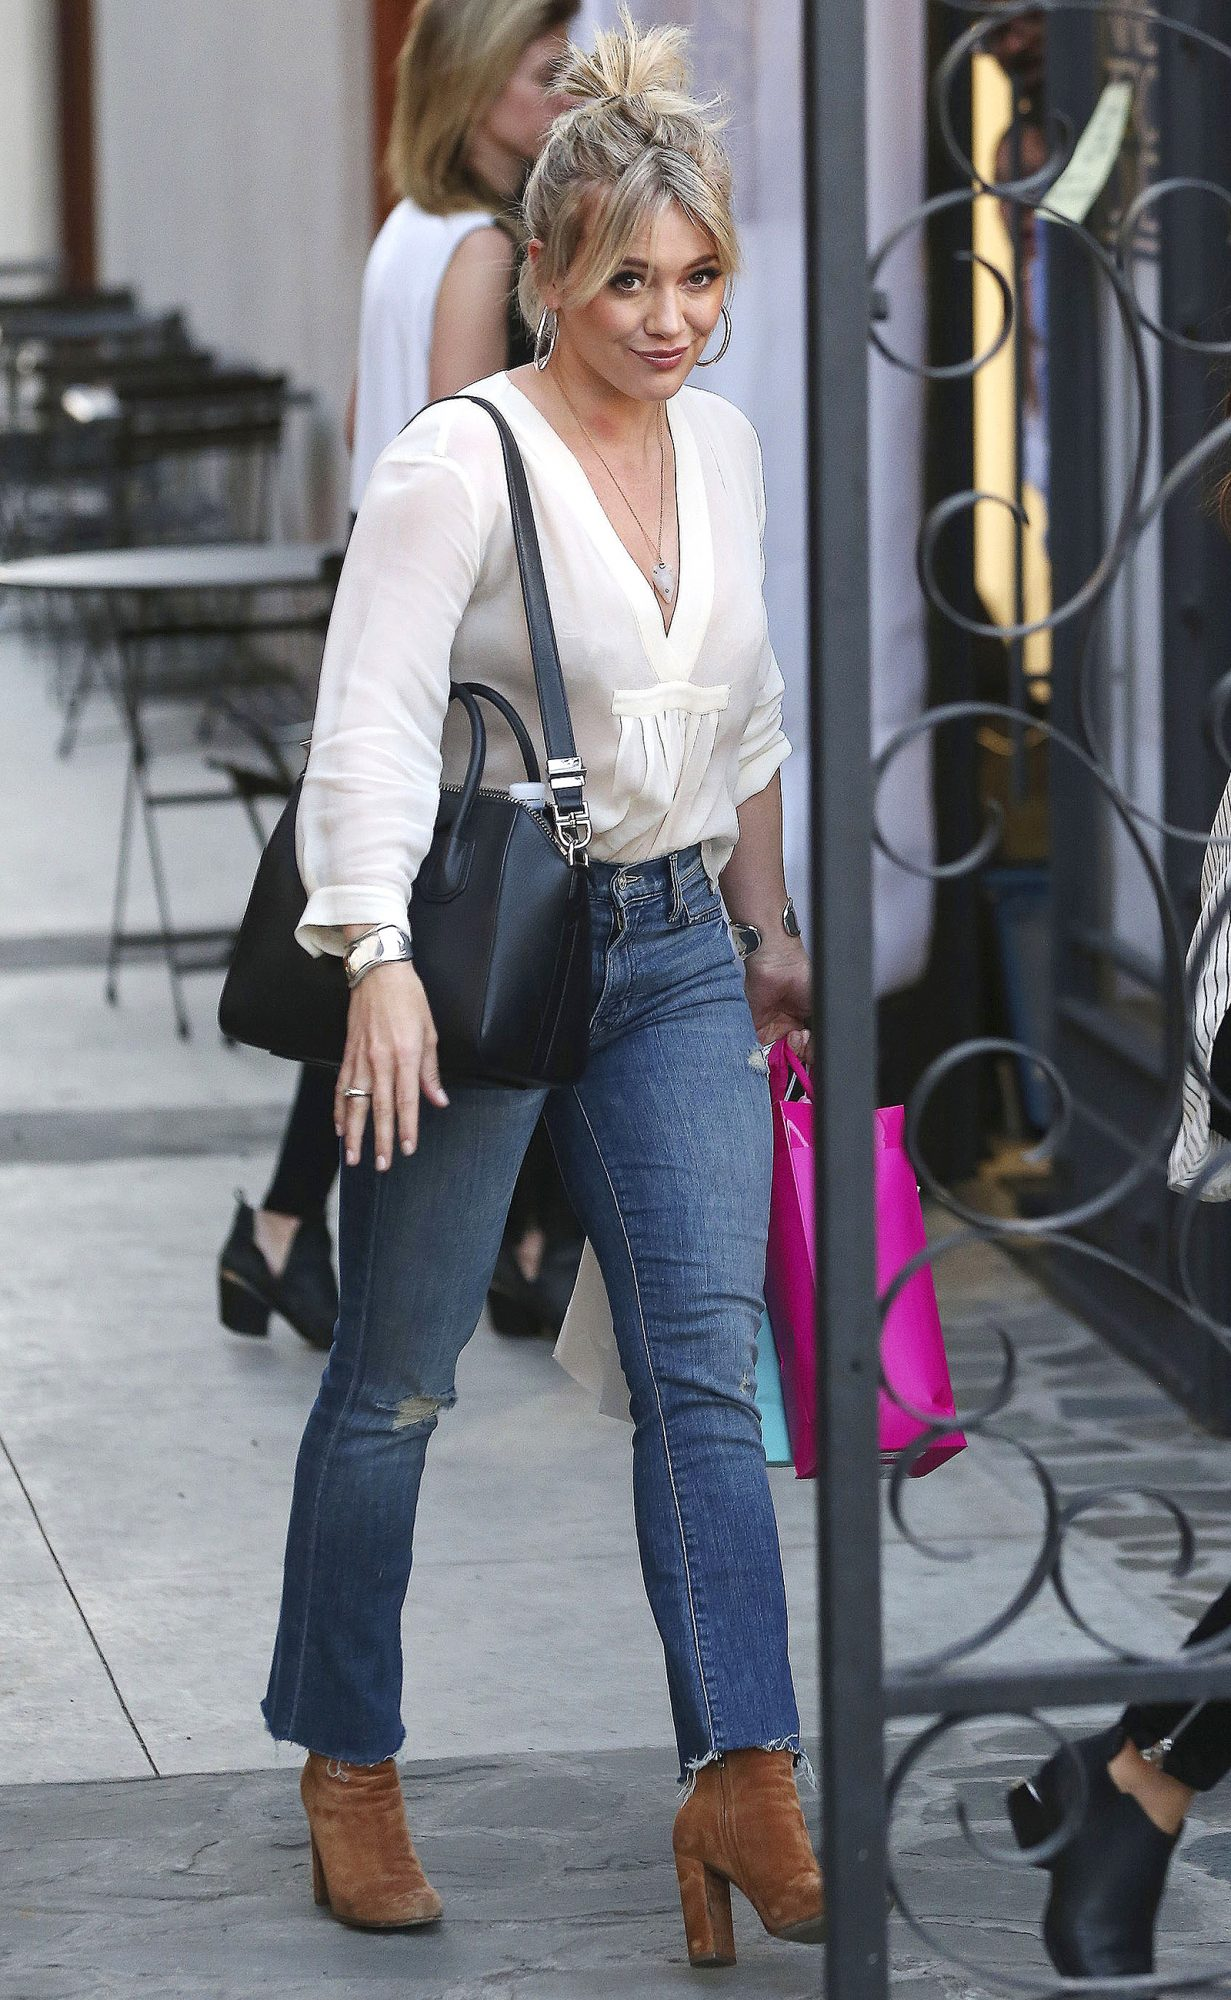 Hilary Duff Gets Her Hair Done In West Hollywood